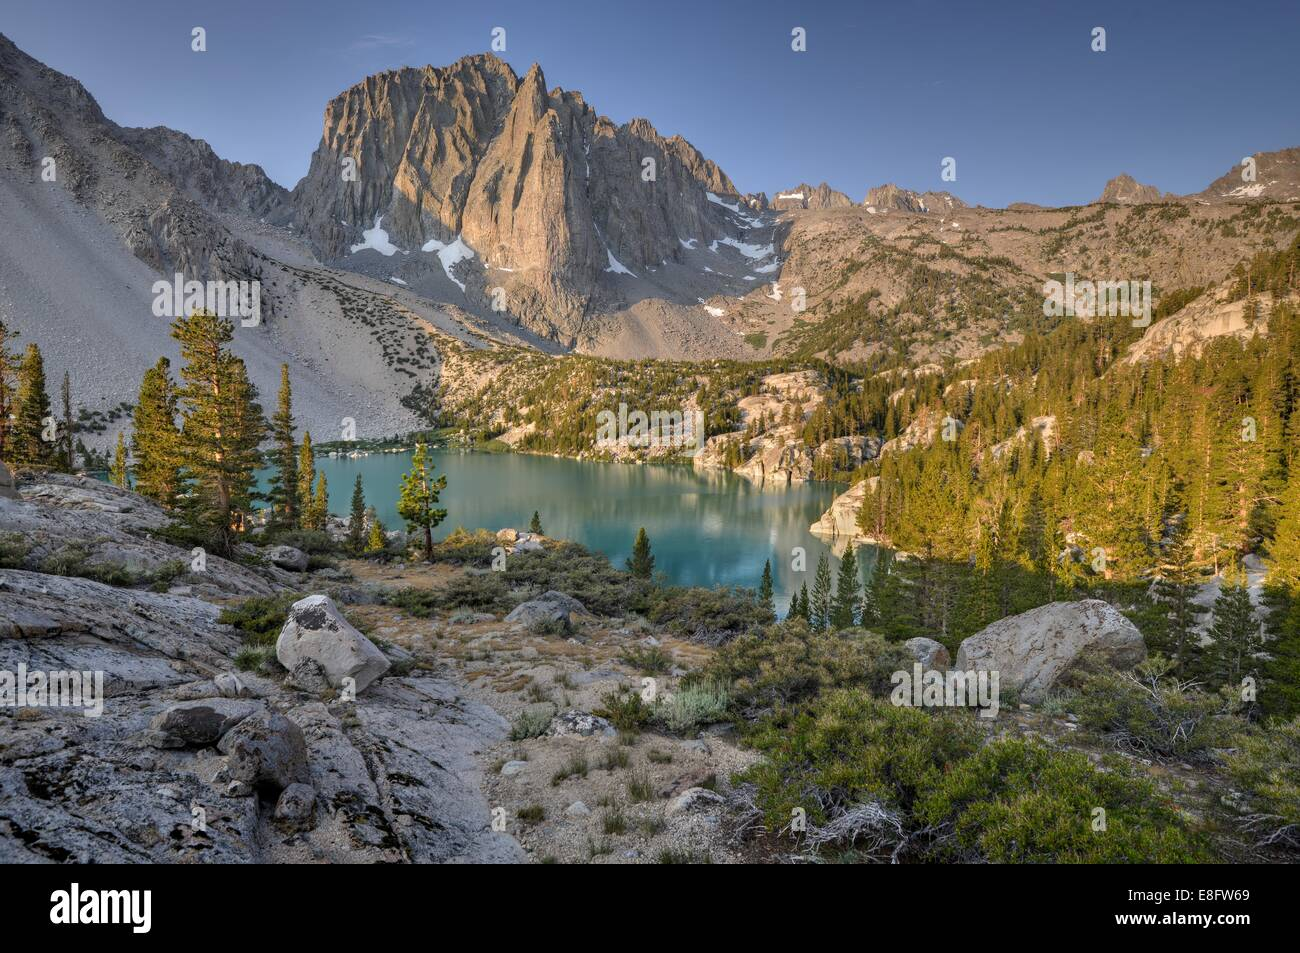 USA, California, Inyo National Forest, Temple Crag and Second Lake - Stock Image